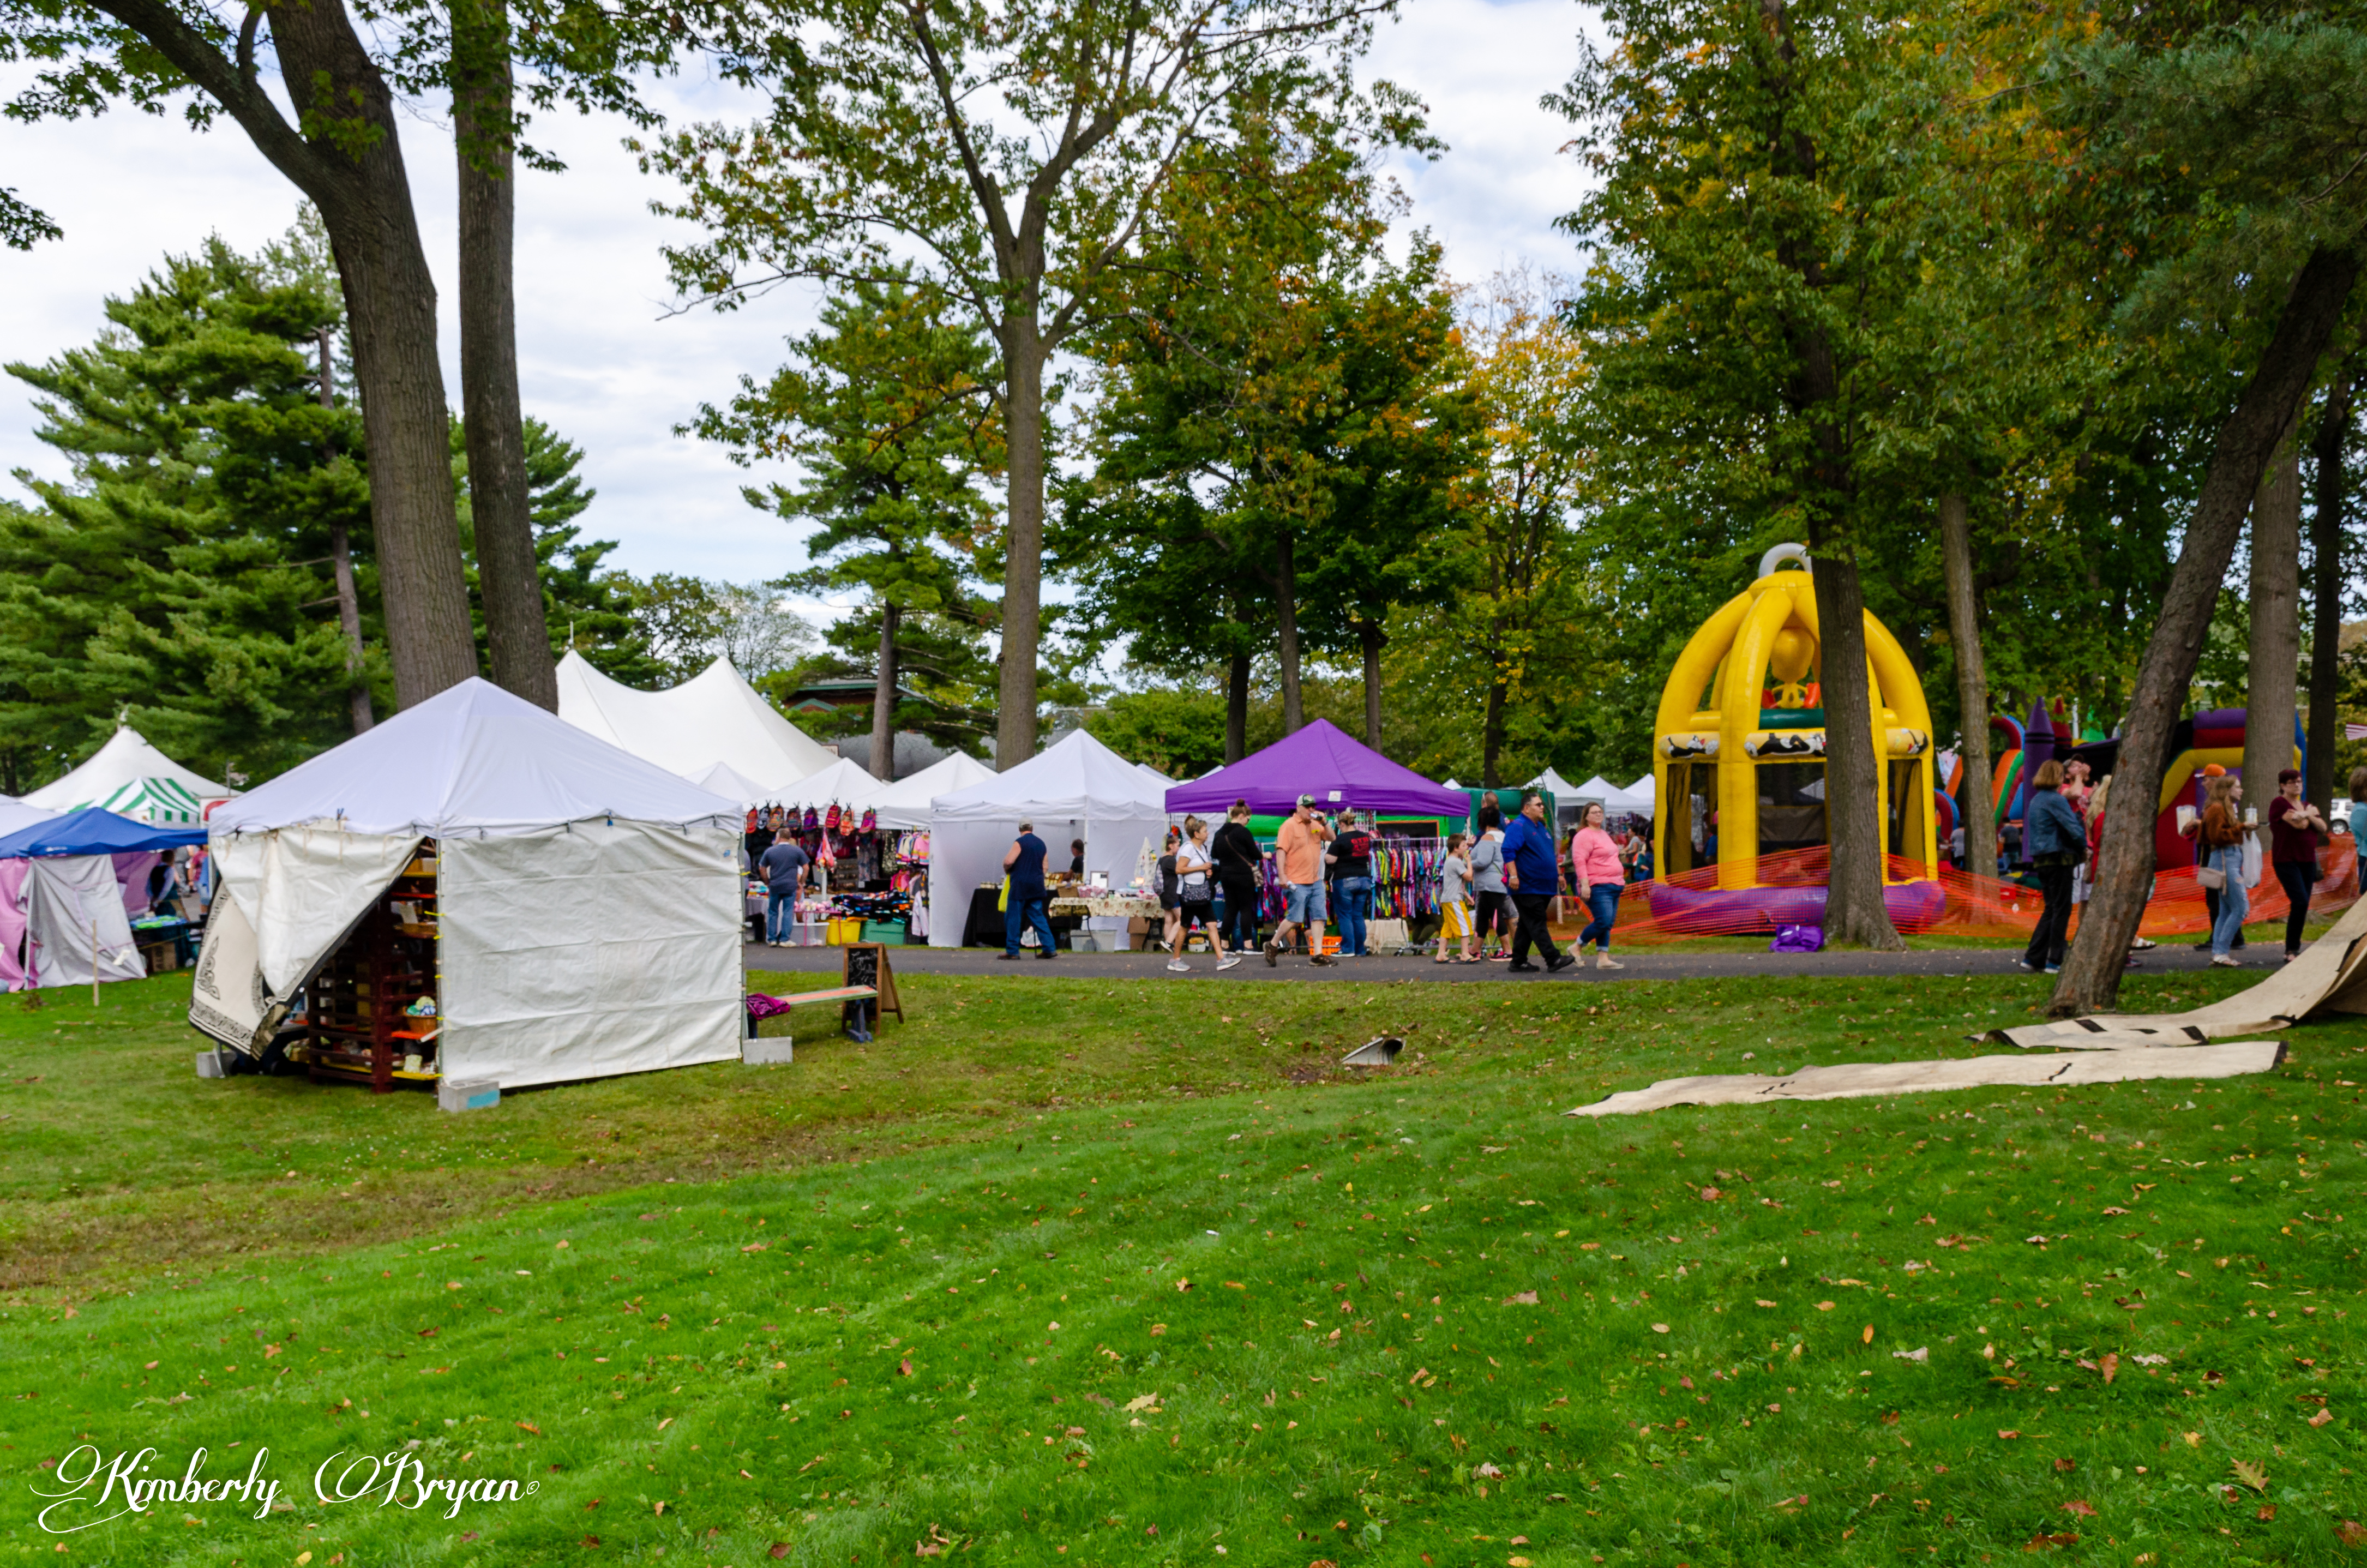 You are looking at some of the vendors tents along the walk way. As well as some areas for the kids to play. This is from my post Marshfield 27th Annual Fall Maple Fest.